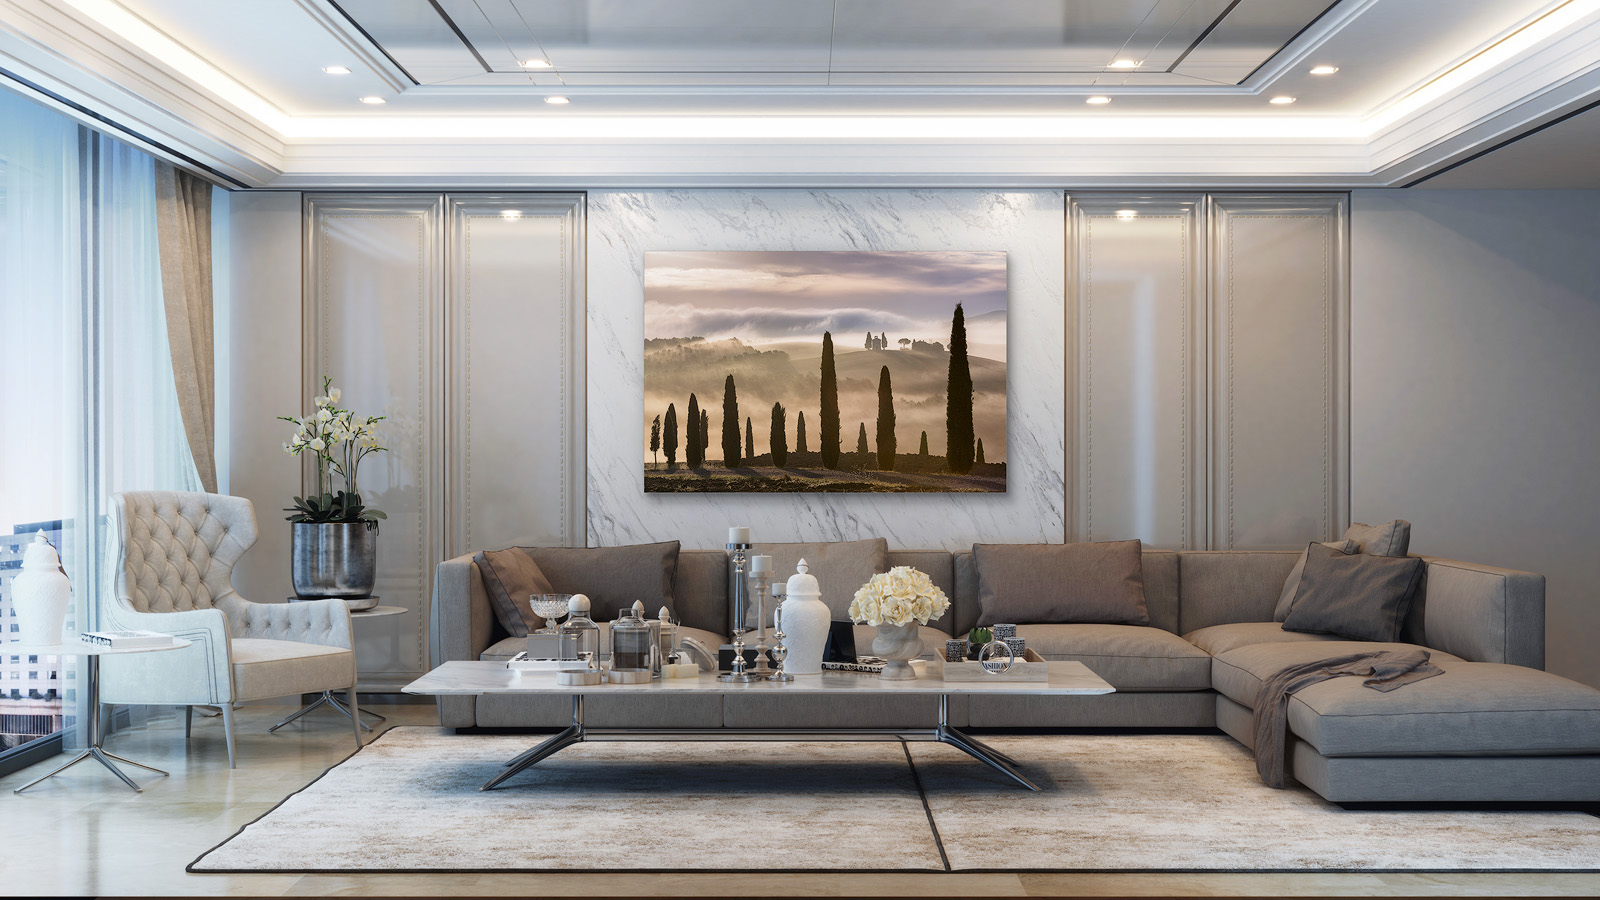 Envision Fine Art in Your Home, Office or Private Gallery